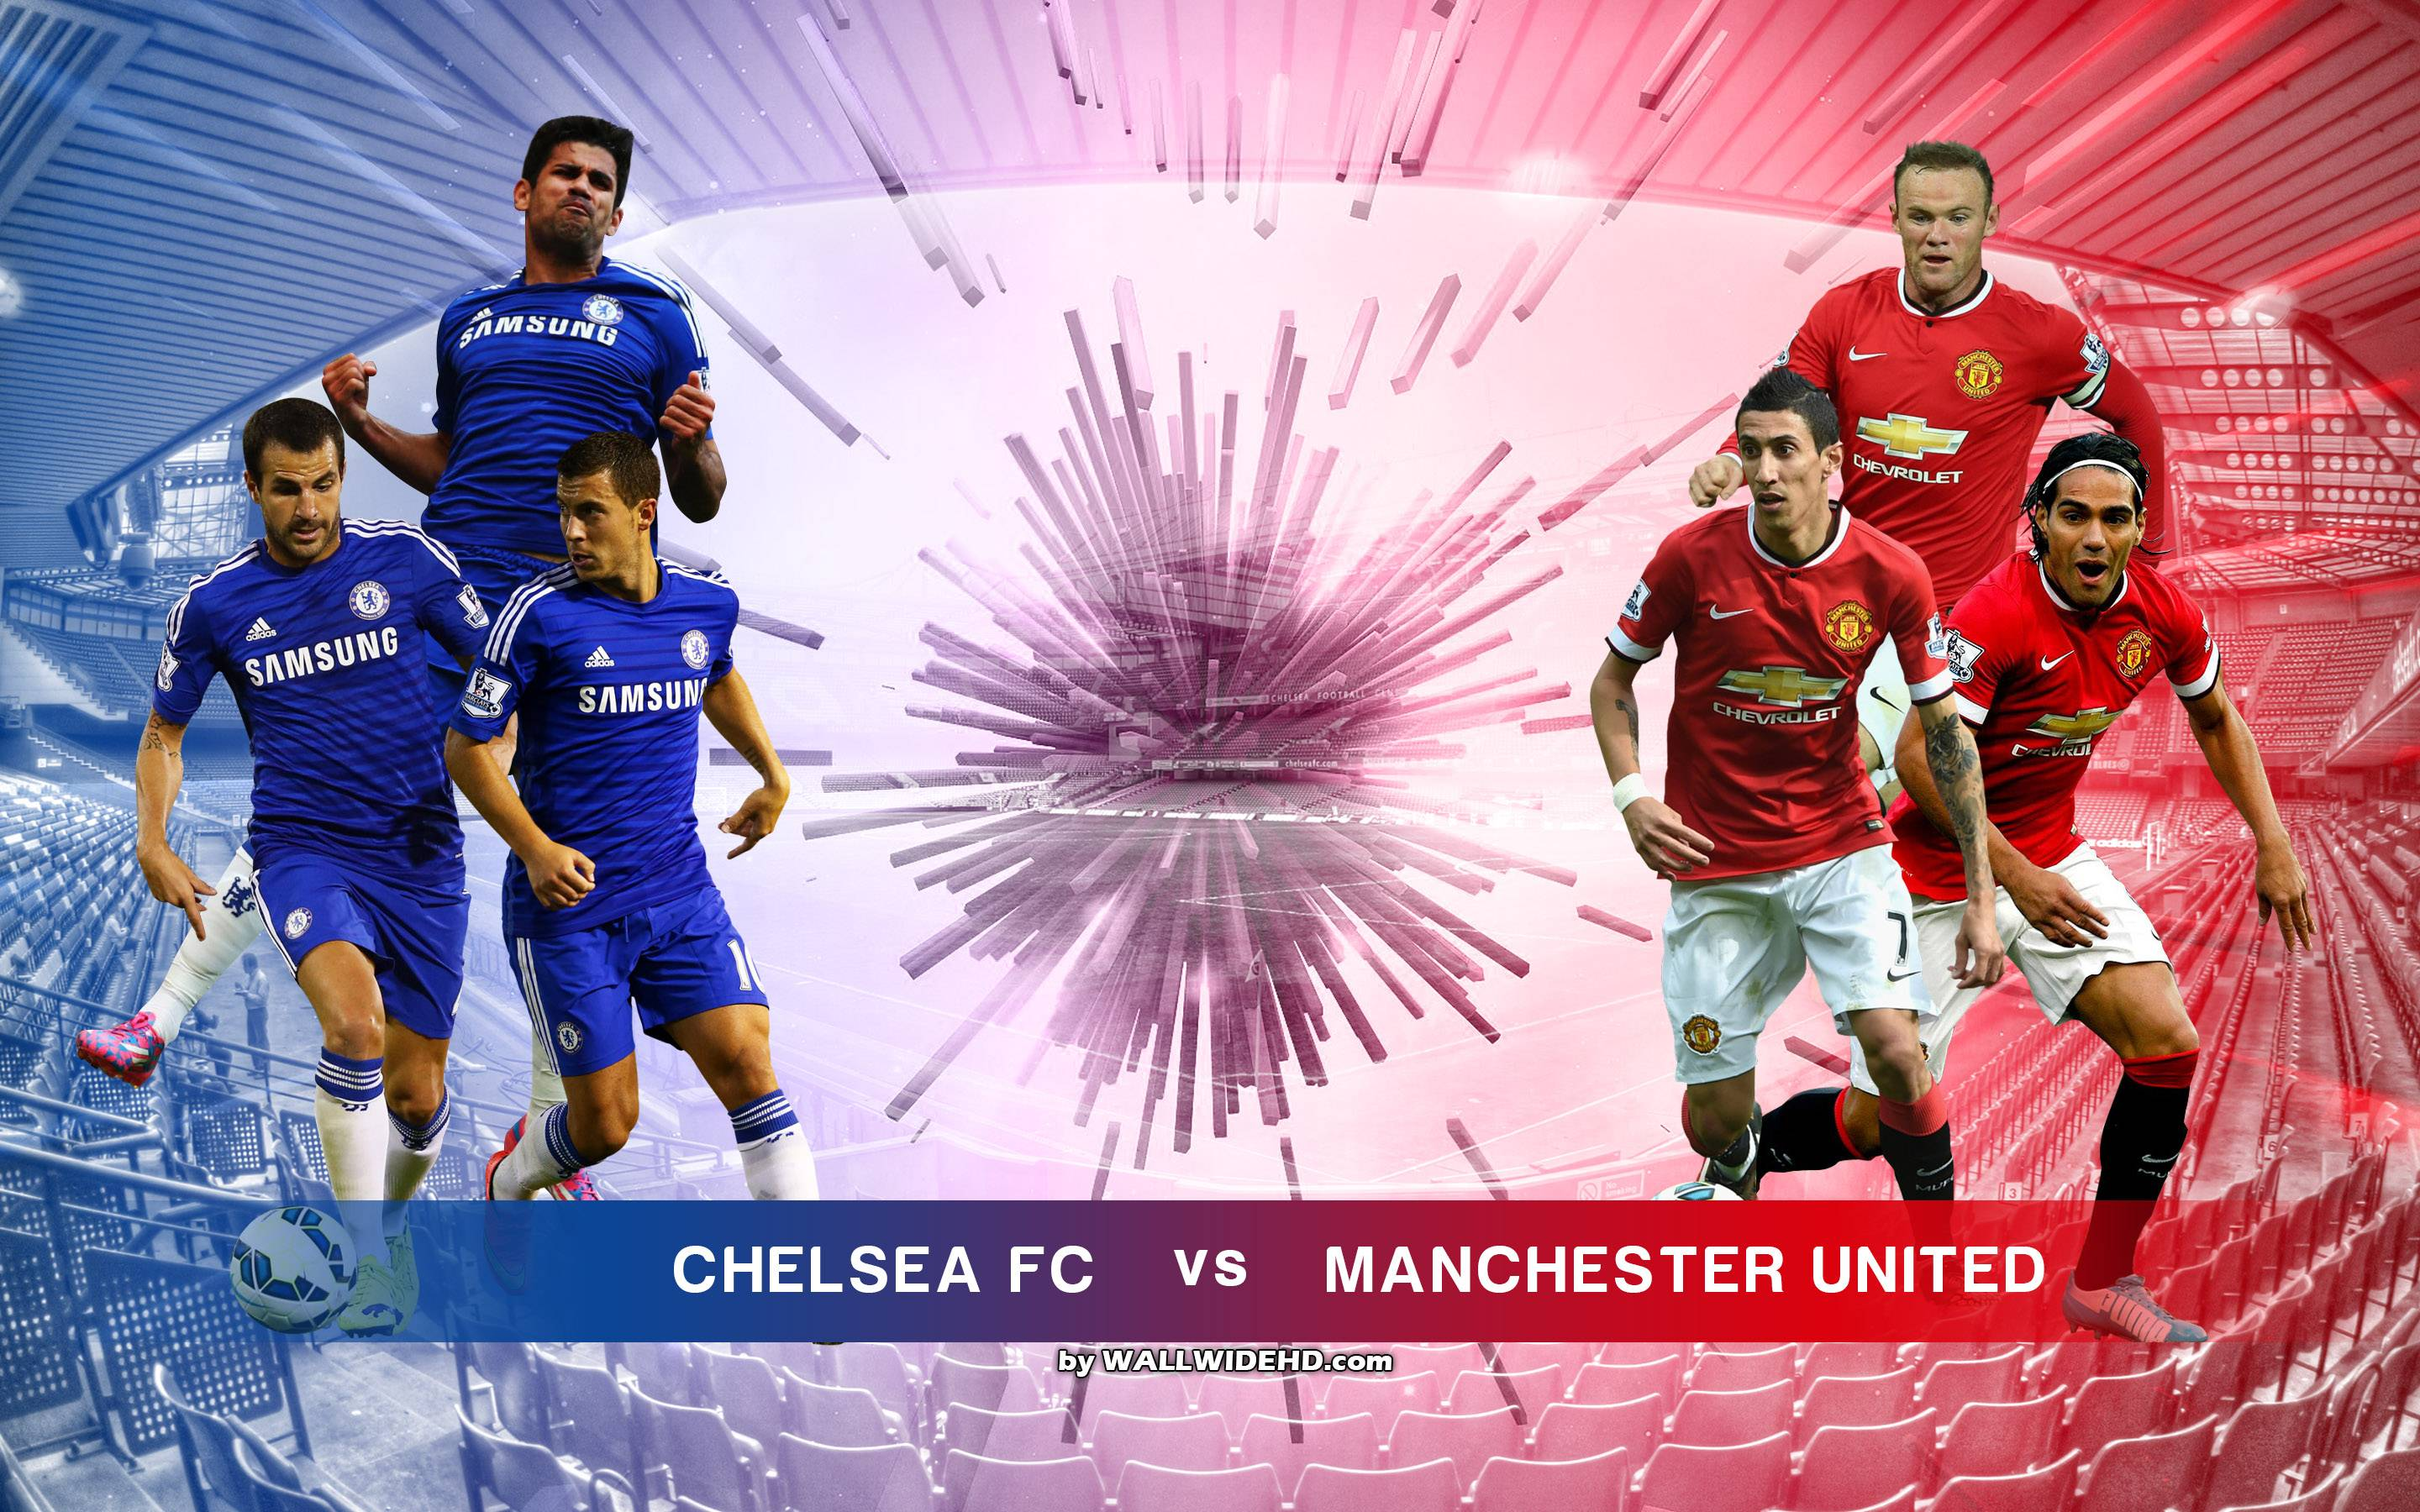 Mexico soccer wallpapers 2015 wallpaper cave chelsea fc vs manchester united 2015 wallpaper wide or hd sports voltagebd Image collections